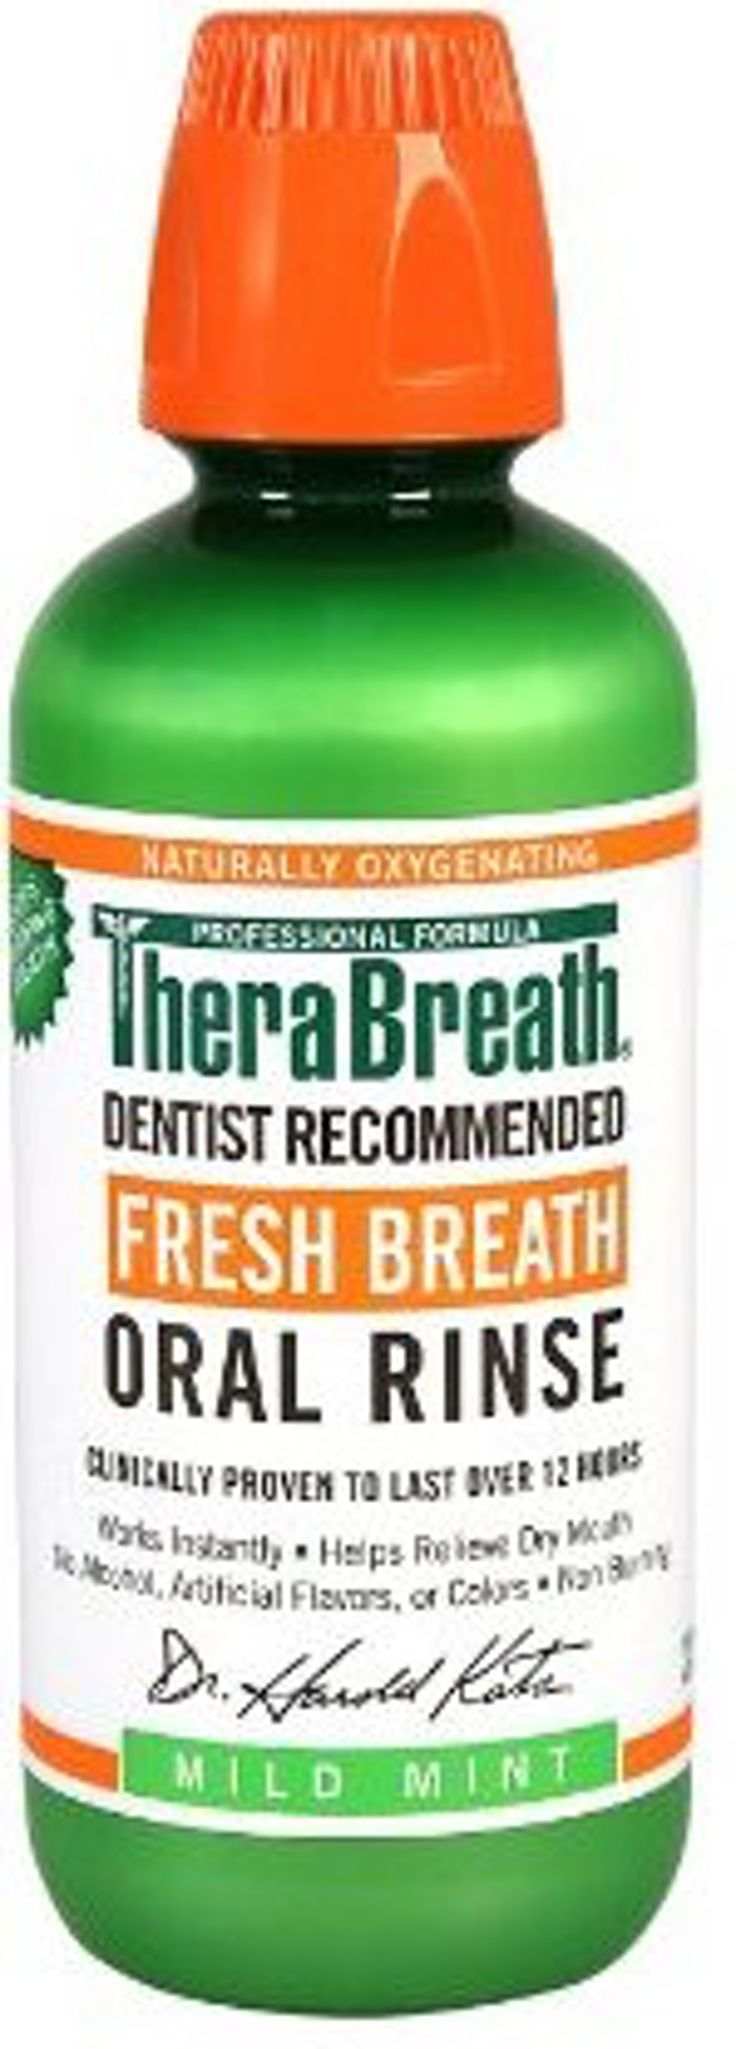 After a six-year stint with braces, you better believe I'm hyper-sensitive about my oral hygiene routine. But knowing how to stop bad breath in the morning can feel like a whole different monster. Preventing morning breath is one of those things that